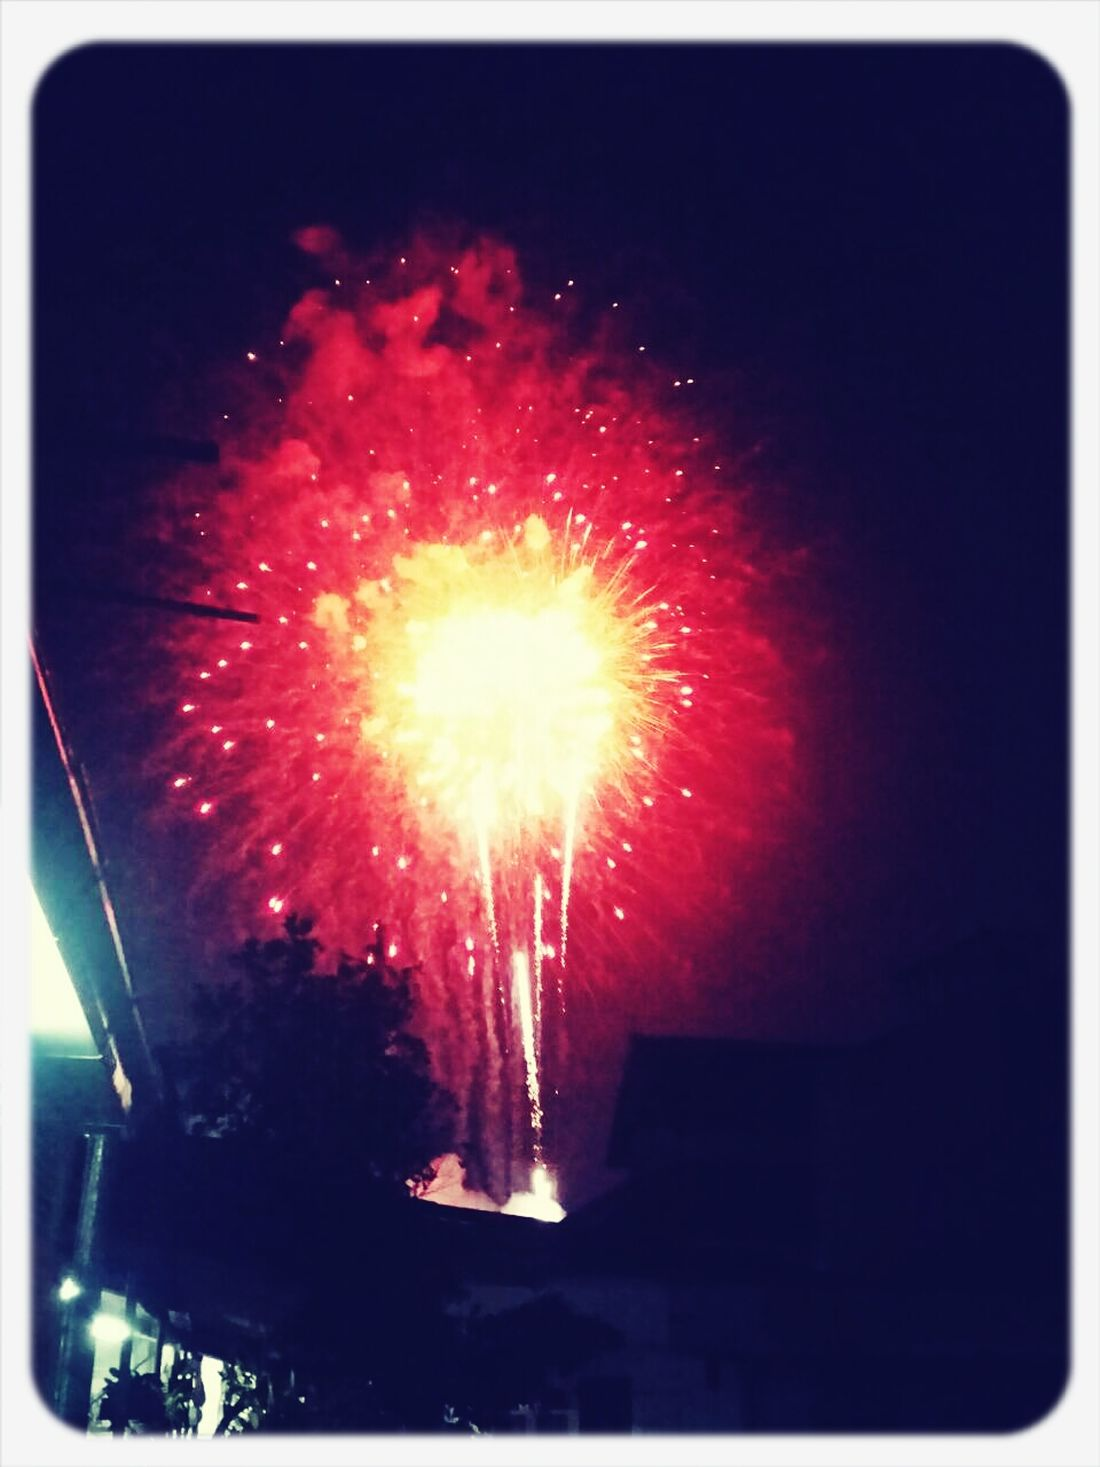 Fireworks Father's Day Chiang Mai   Thailand Lone Live The King